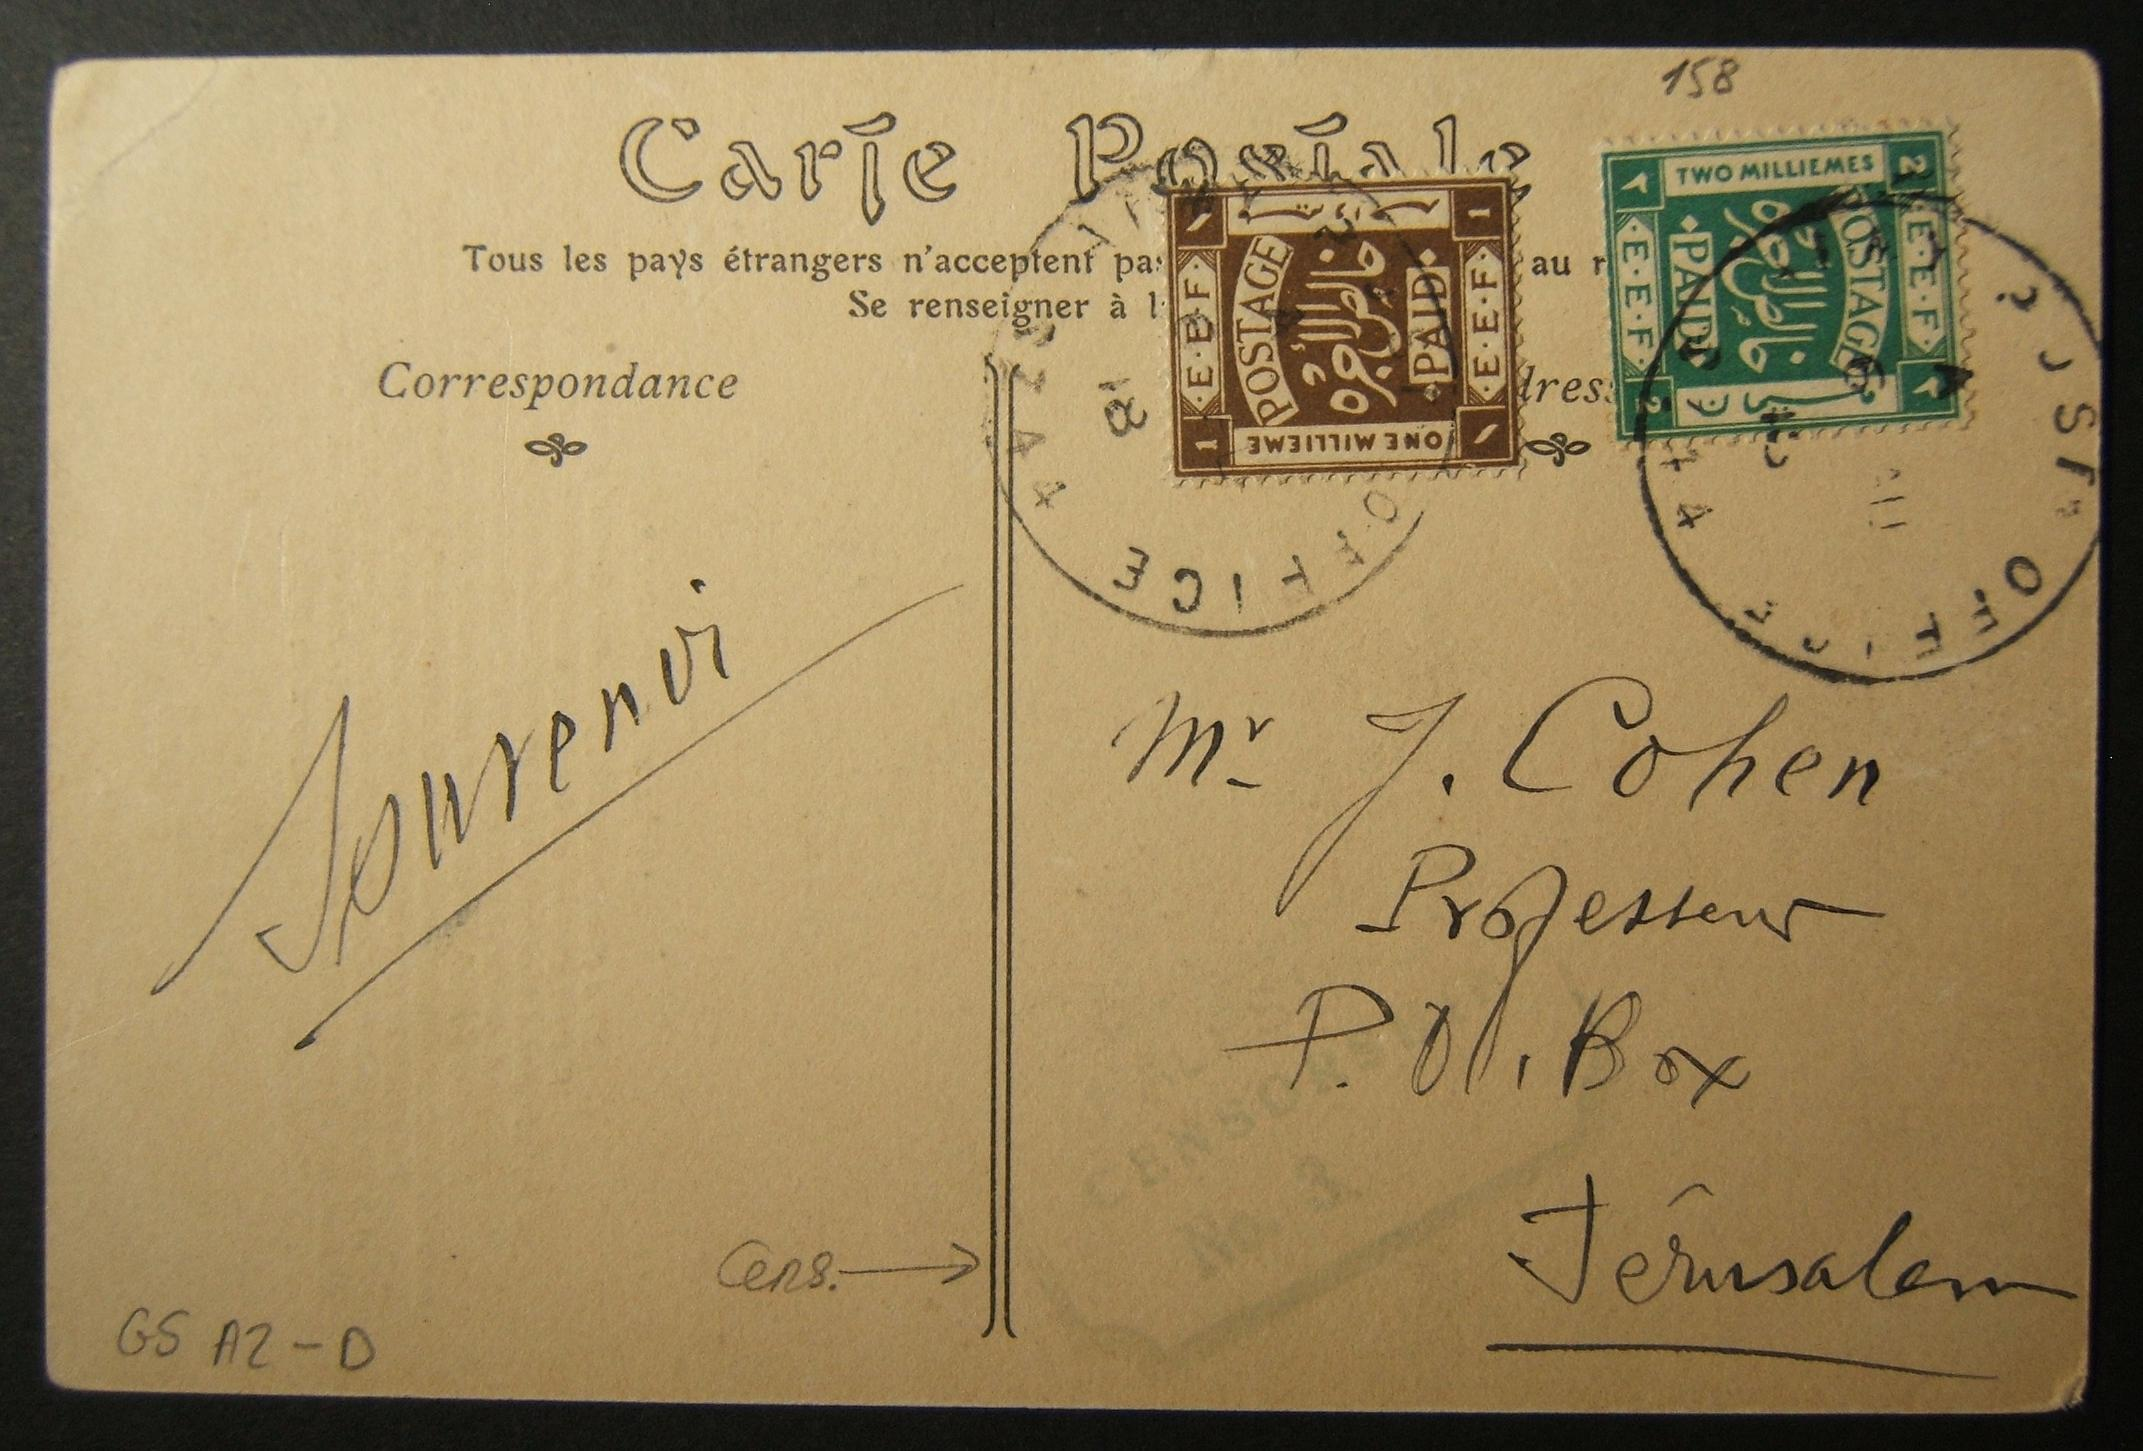 Mandate stamps / period 2: 6 AU 18 local JERUSALEM ppc of Pierre Corneille ex APO SZ 44 (J'lem) franked at period 3m scarce souvenir PC rate using typographed 1m & 2m Ba5/6 tied by